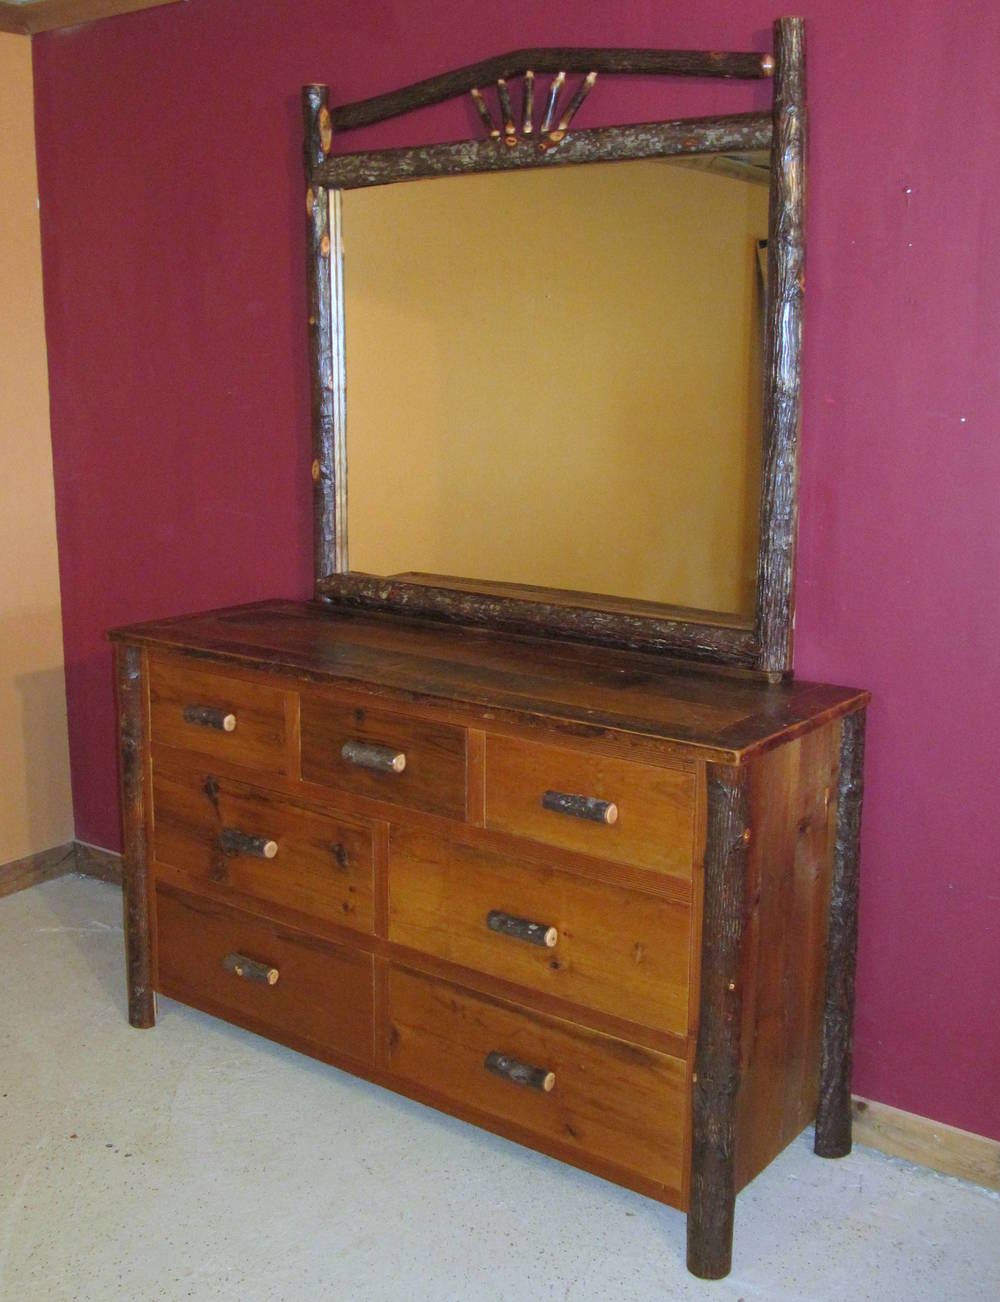 hickory-log-dresser-mirror-unique